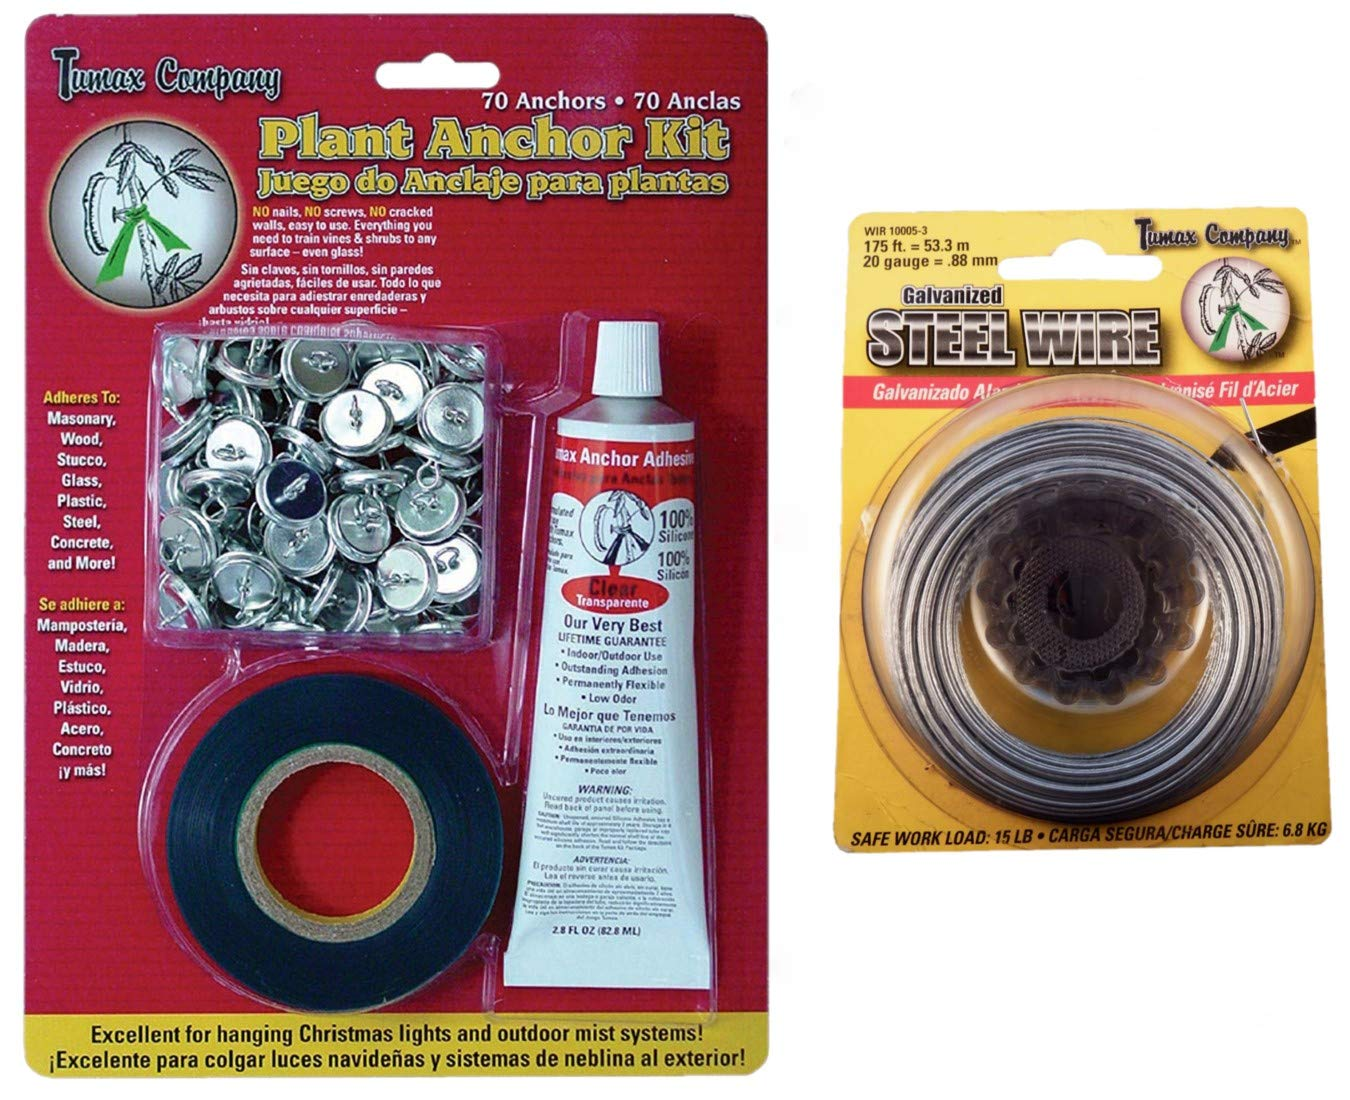 Tumax Plant Anchor Kit for Training Vines Roses and Garden Plants | Bundled with Galvanized Steel Wire 20ga by Tumax Company